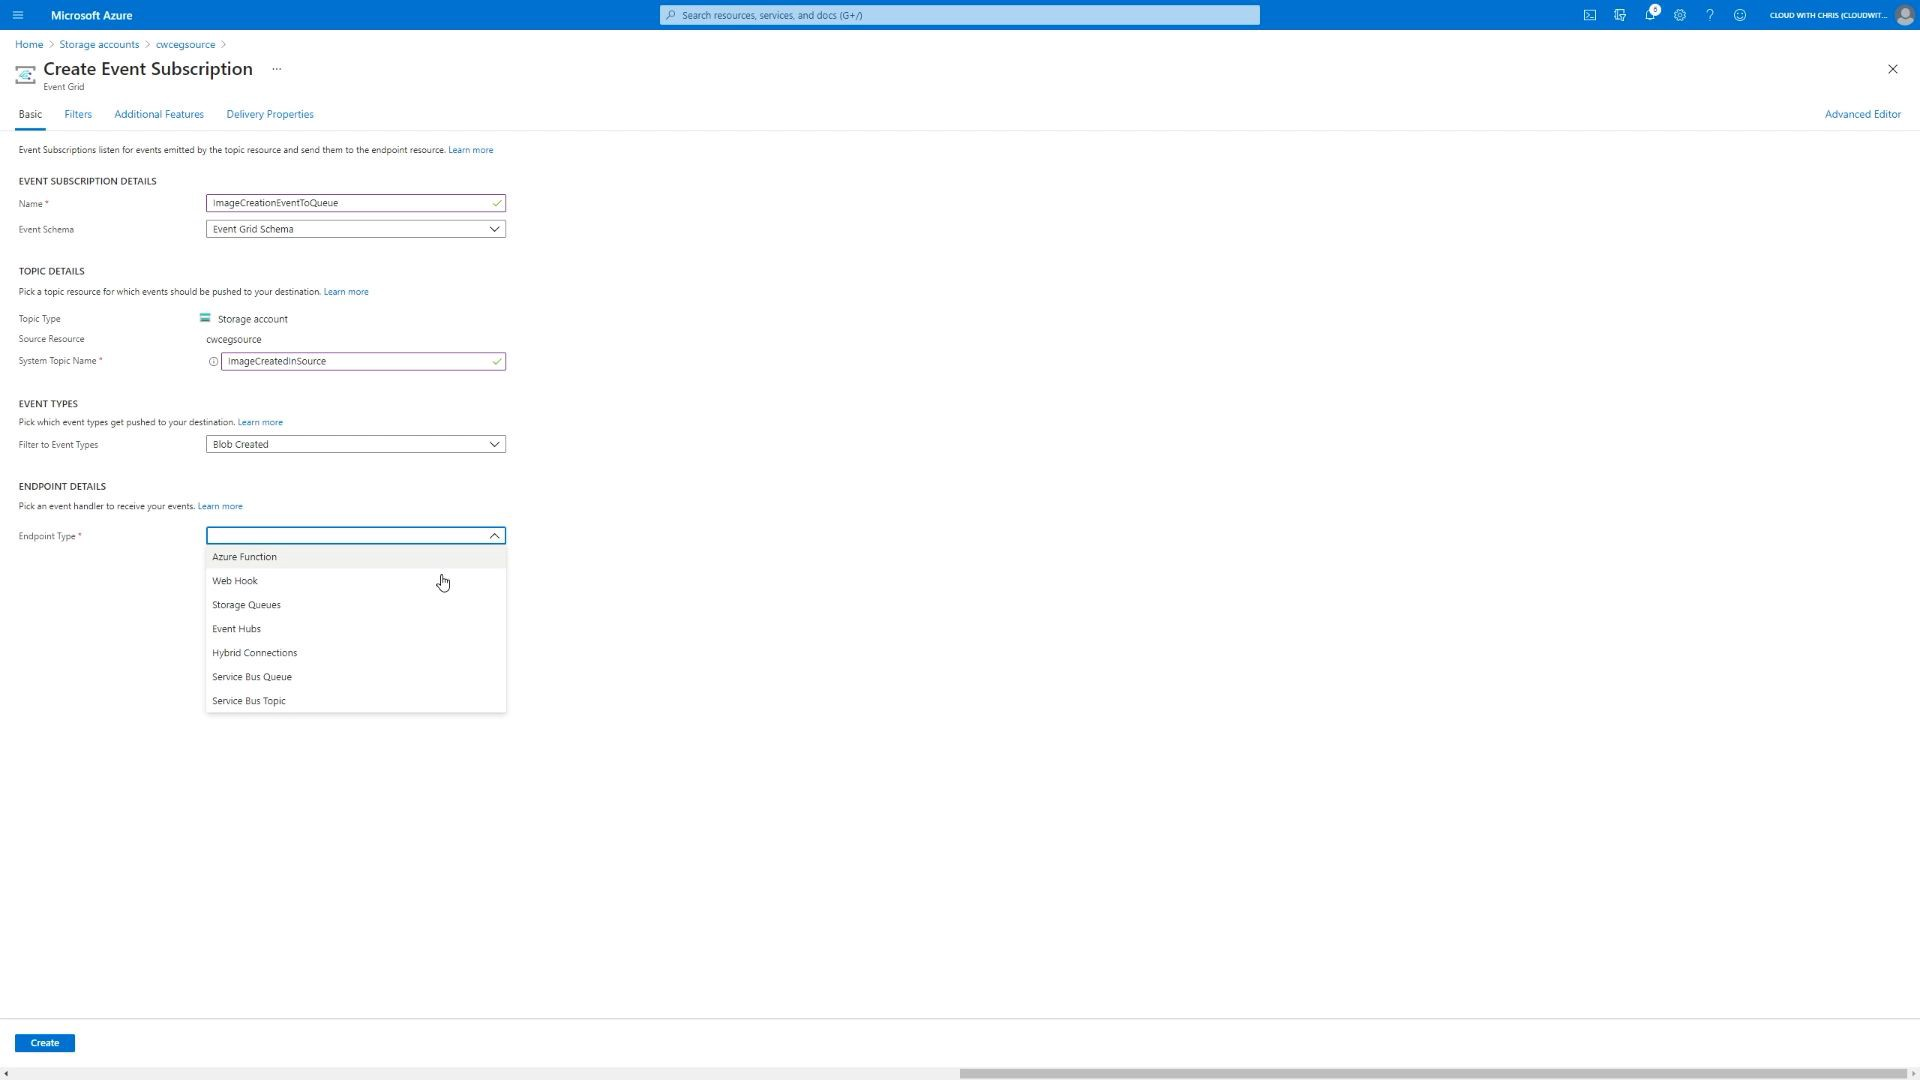 Screenshot showing the creation experience for the event subscription and System Topic